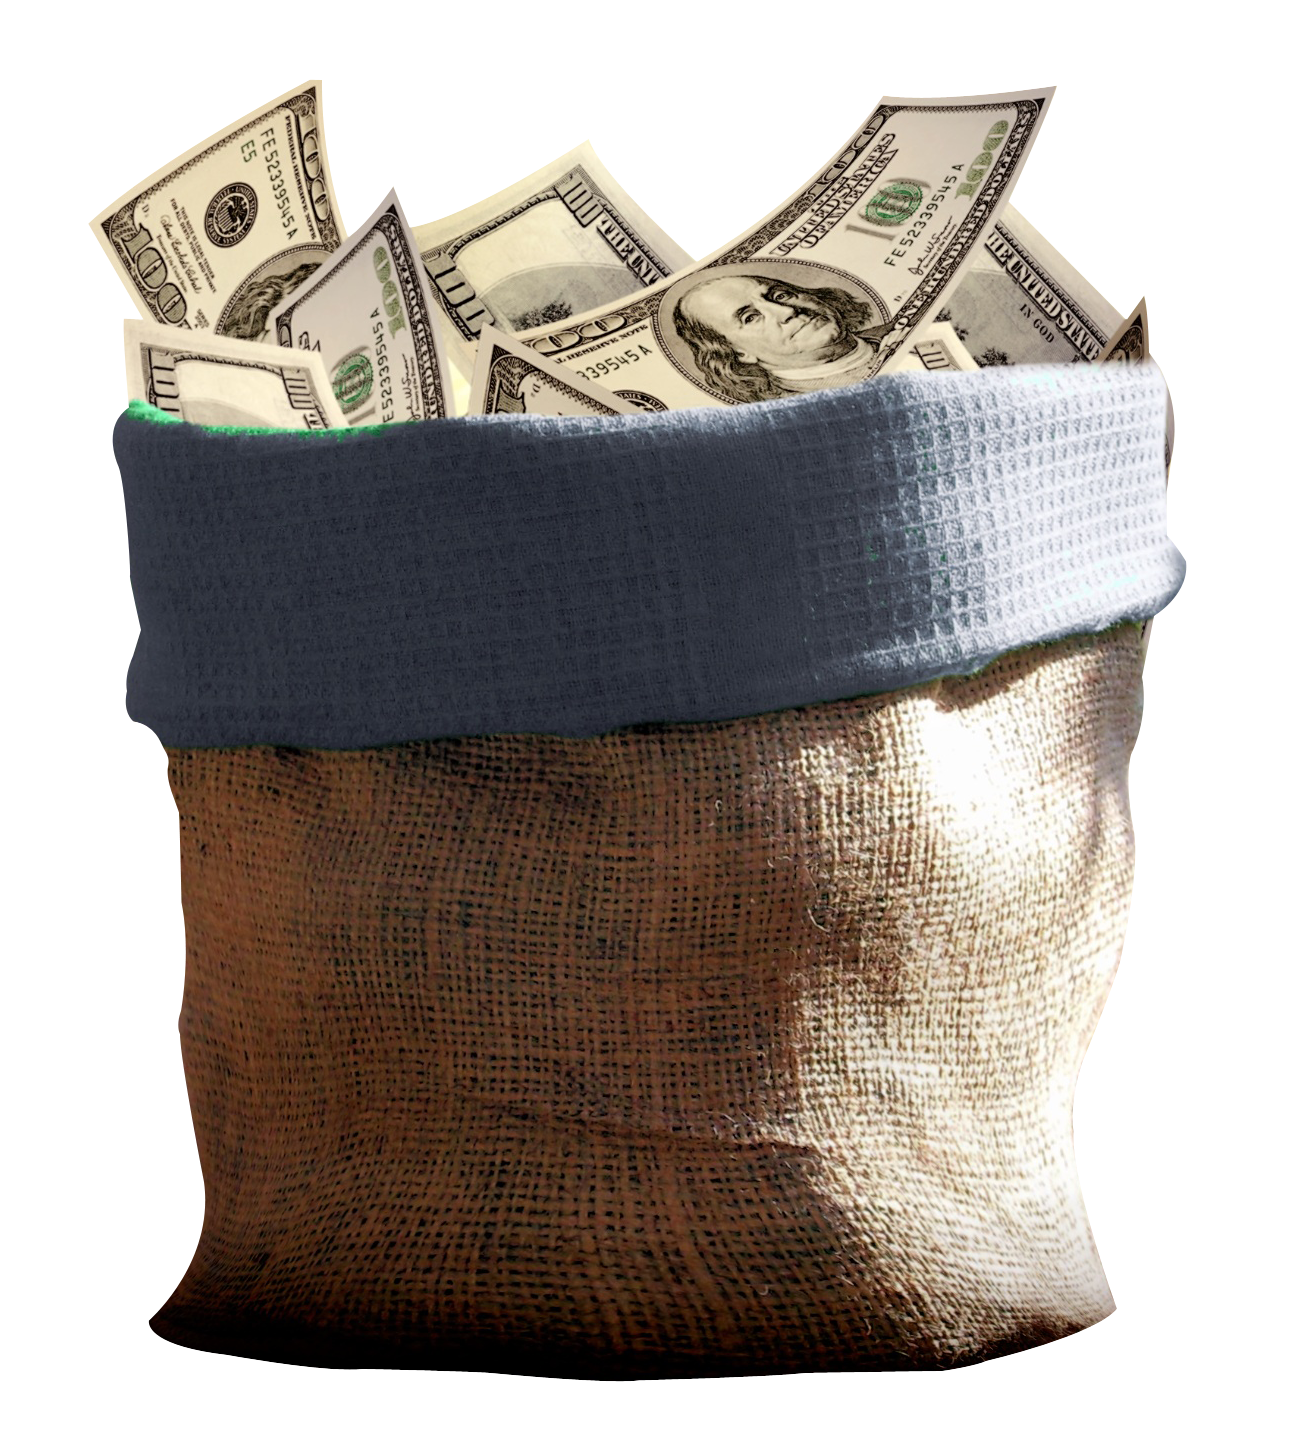 Cash money bag free clipart graphic free library Money Bag PNG Image - PurePNG | Free transparent CC0 PNG Image Library graphic free library